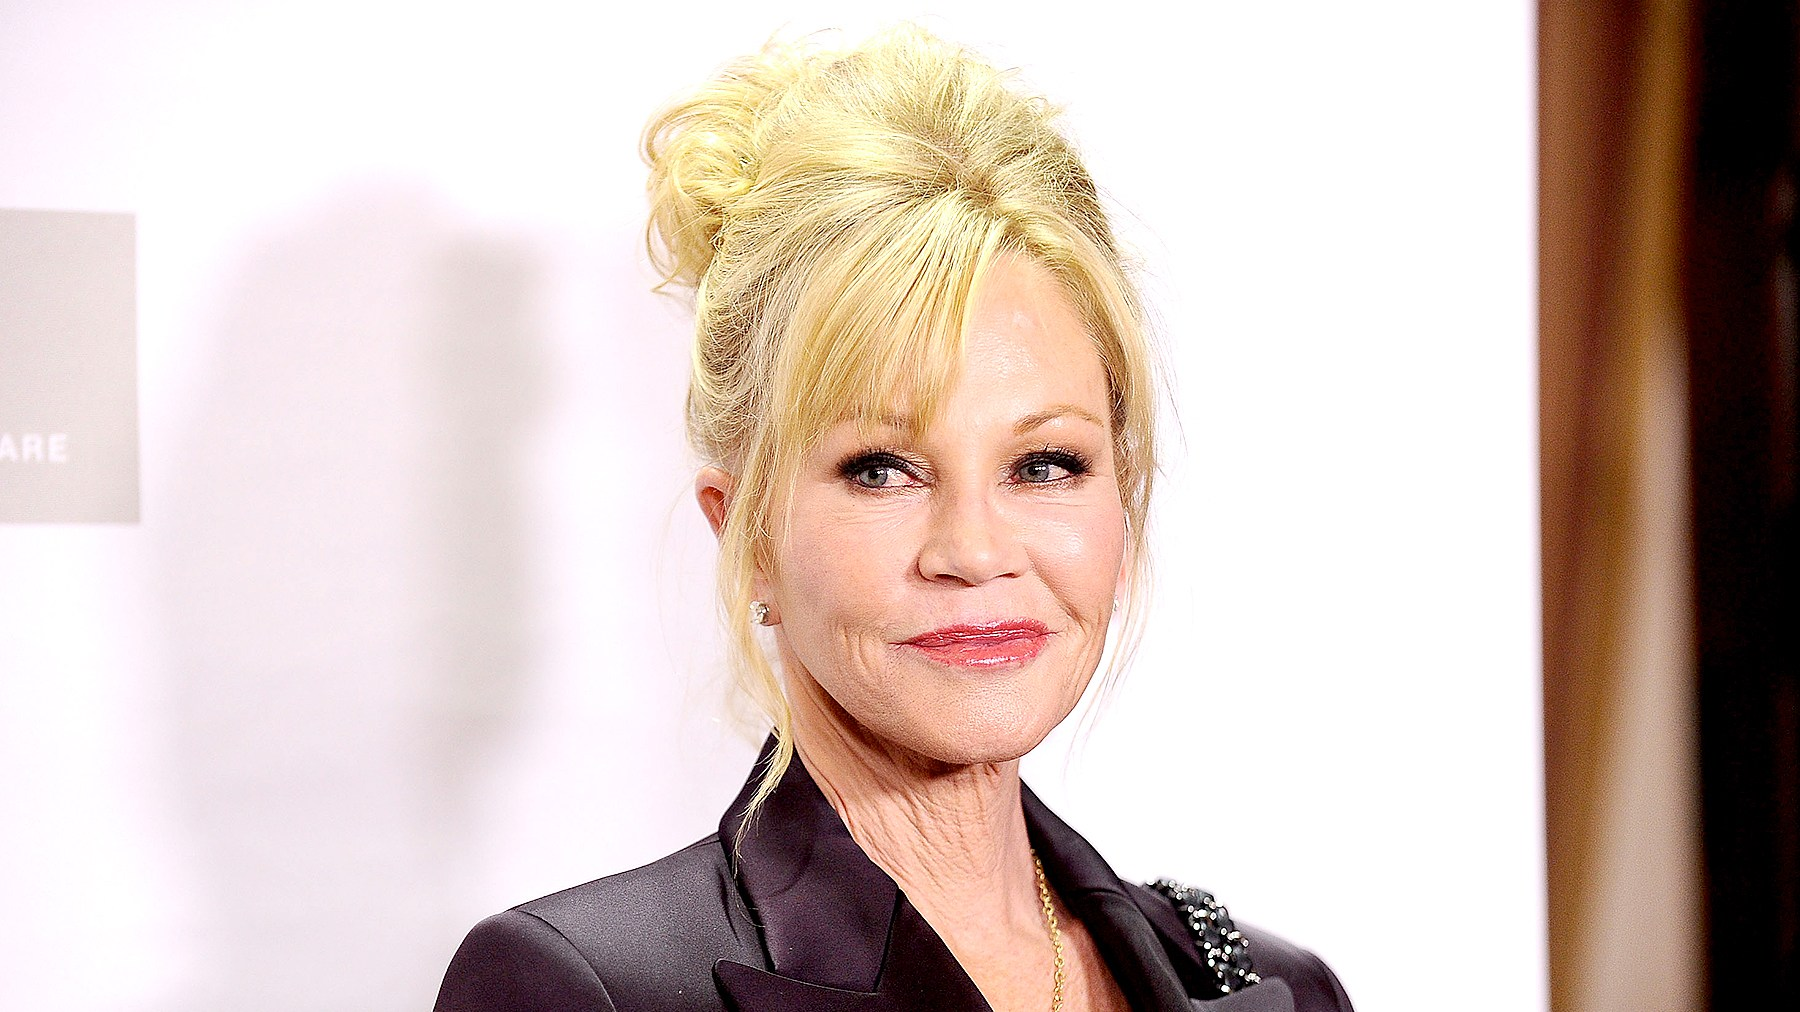 """Melanie Griffith attends Equality Now's 3rd annual """"Make Equality Reality"""" gala at Montage Beverly Hills on December 5, 2016 in Beverly Hills, California."""